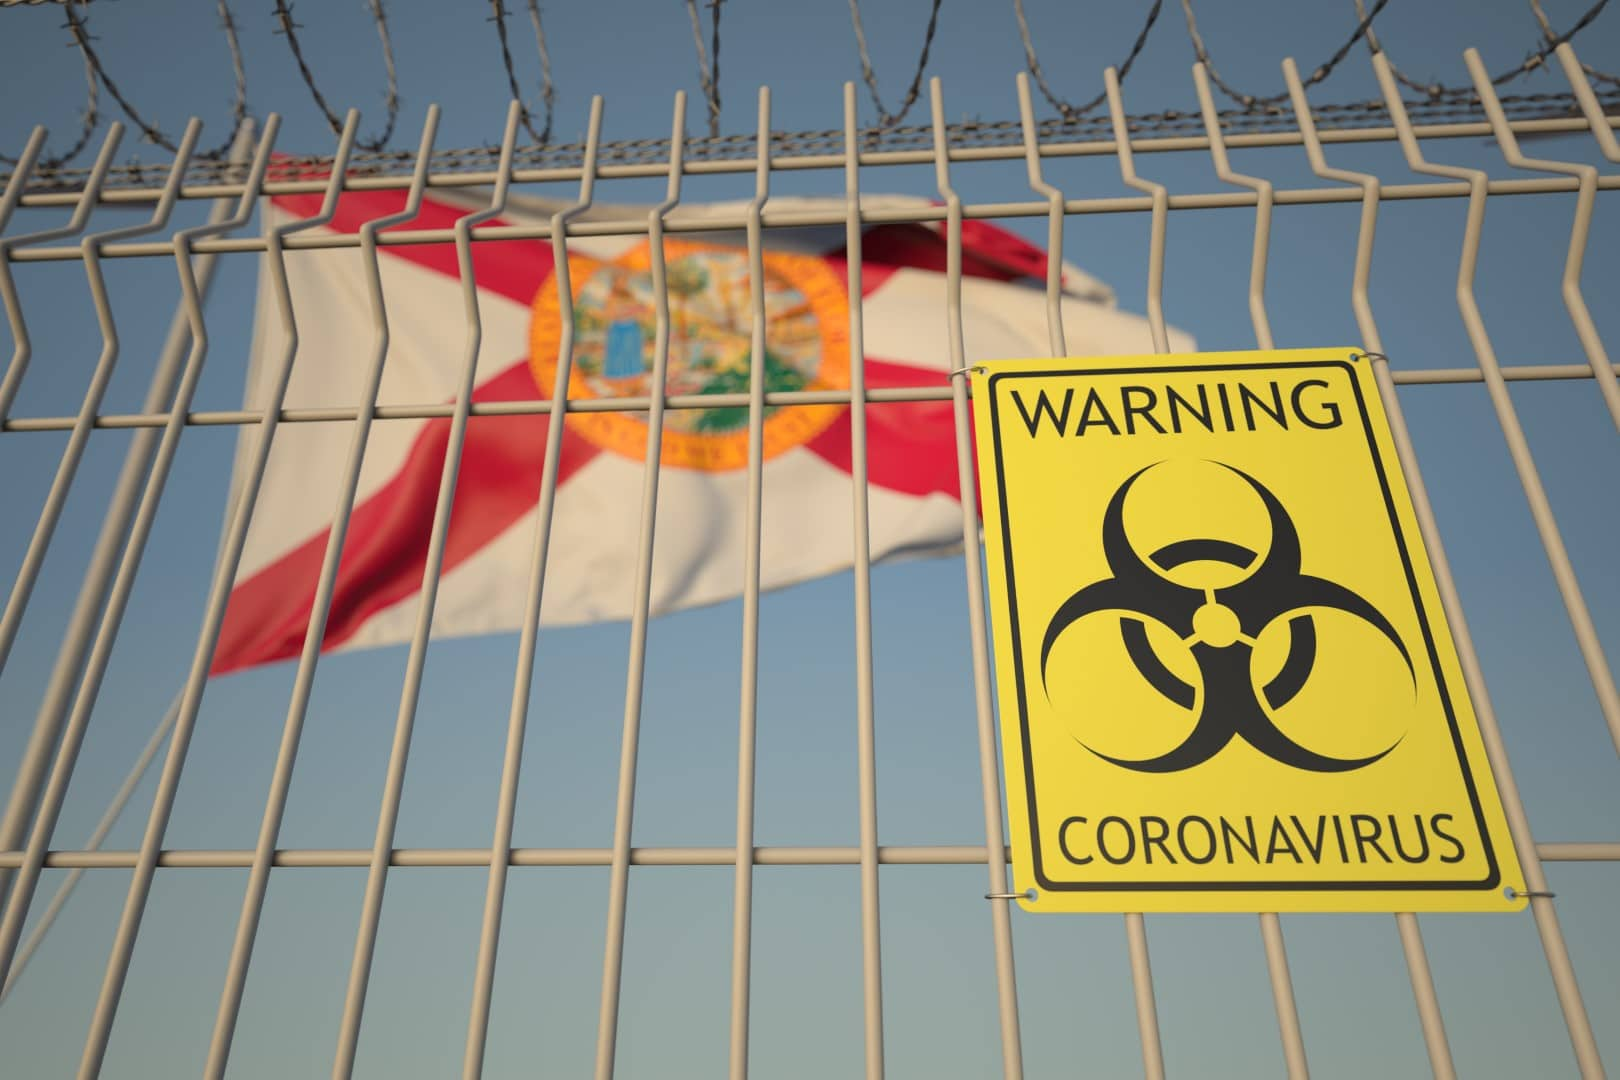 Coronavirus warning sign on the barbed wire fence against flag of Florida. COVID-19 quarantine related 3D rendering